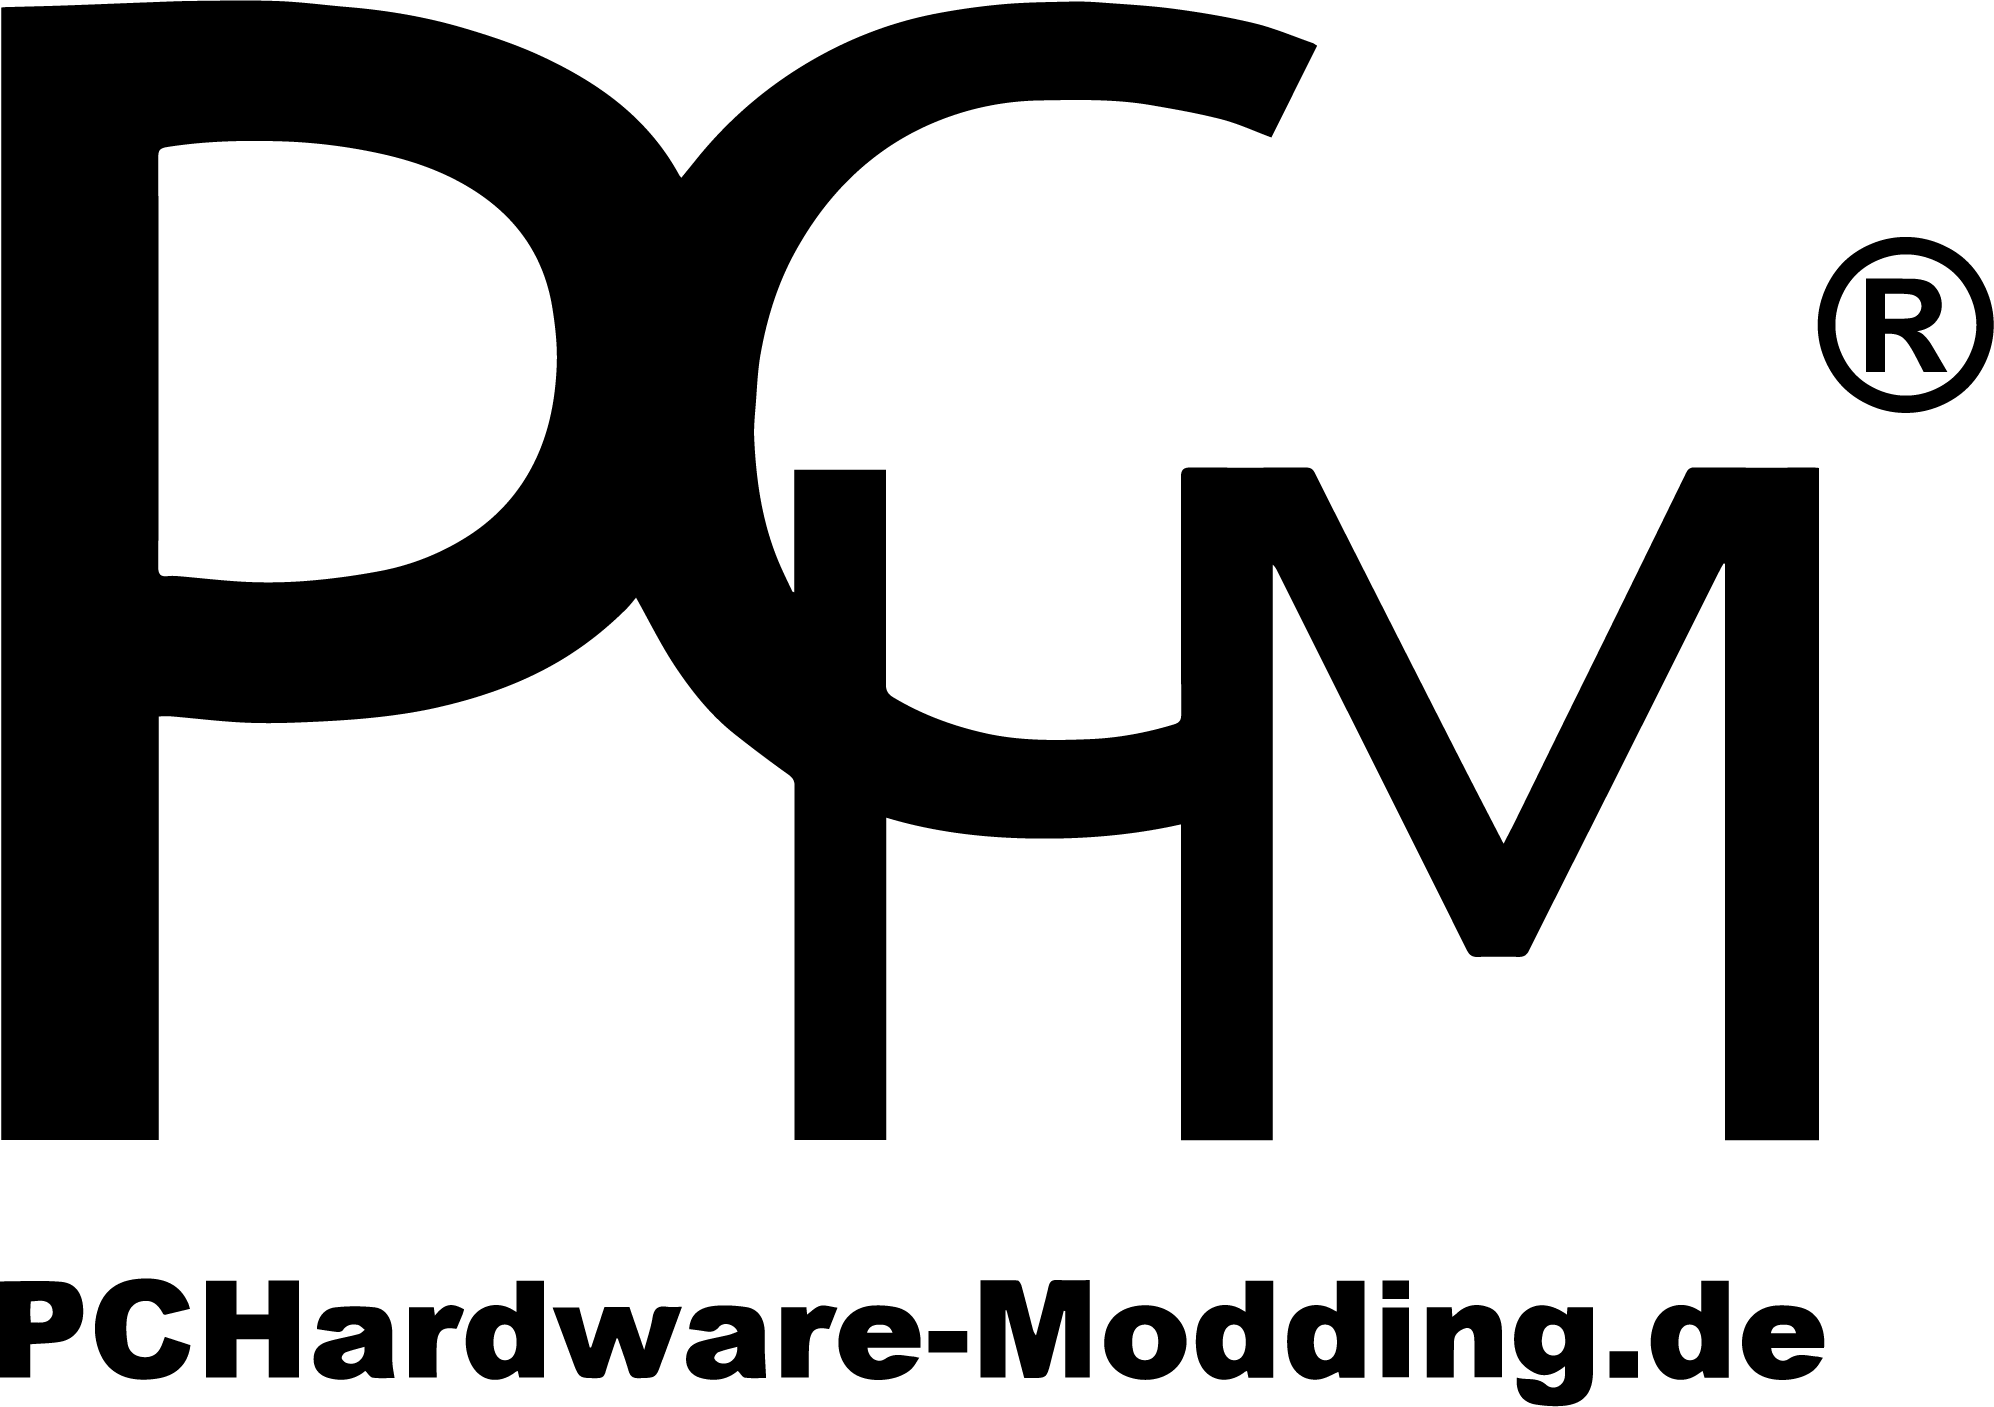 PC Hardware & Modding